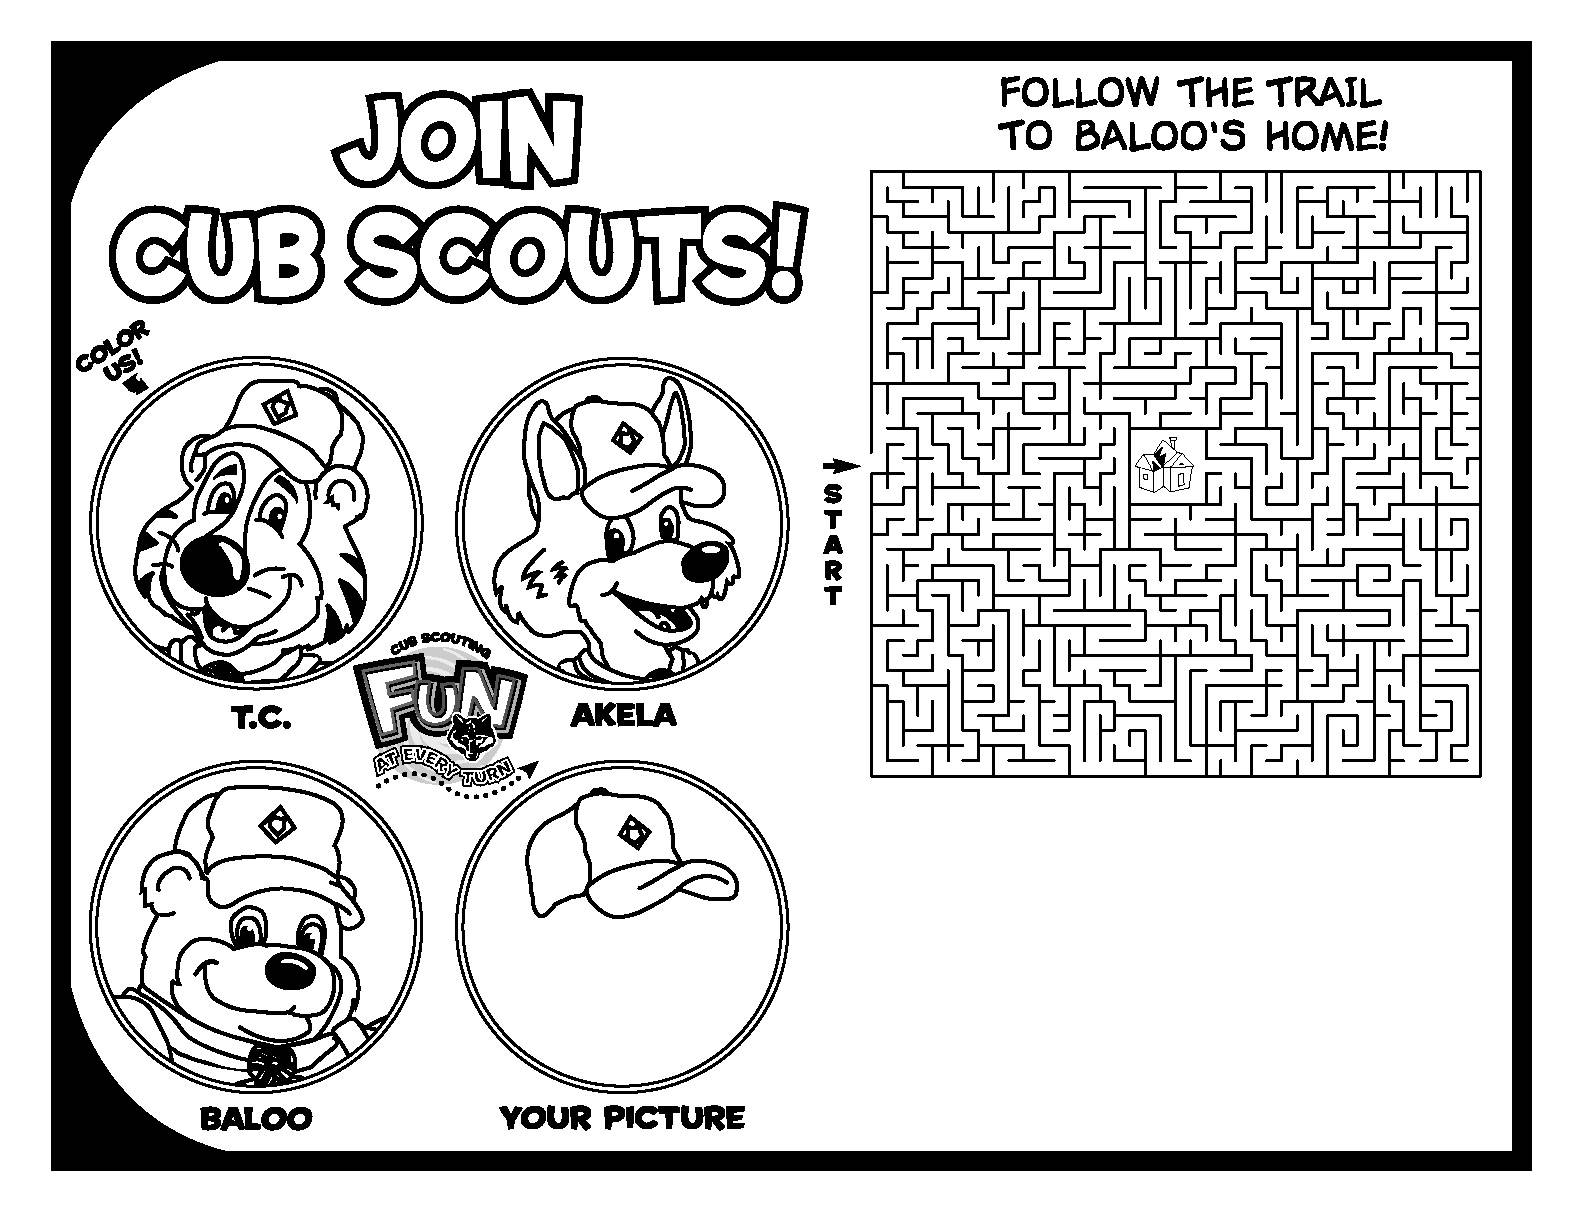 cub scout coloring pages free - photo#32